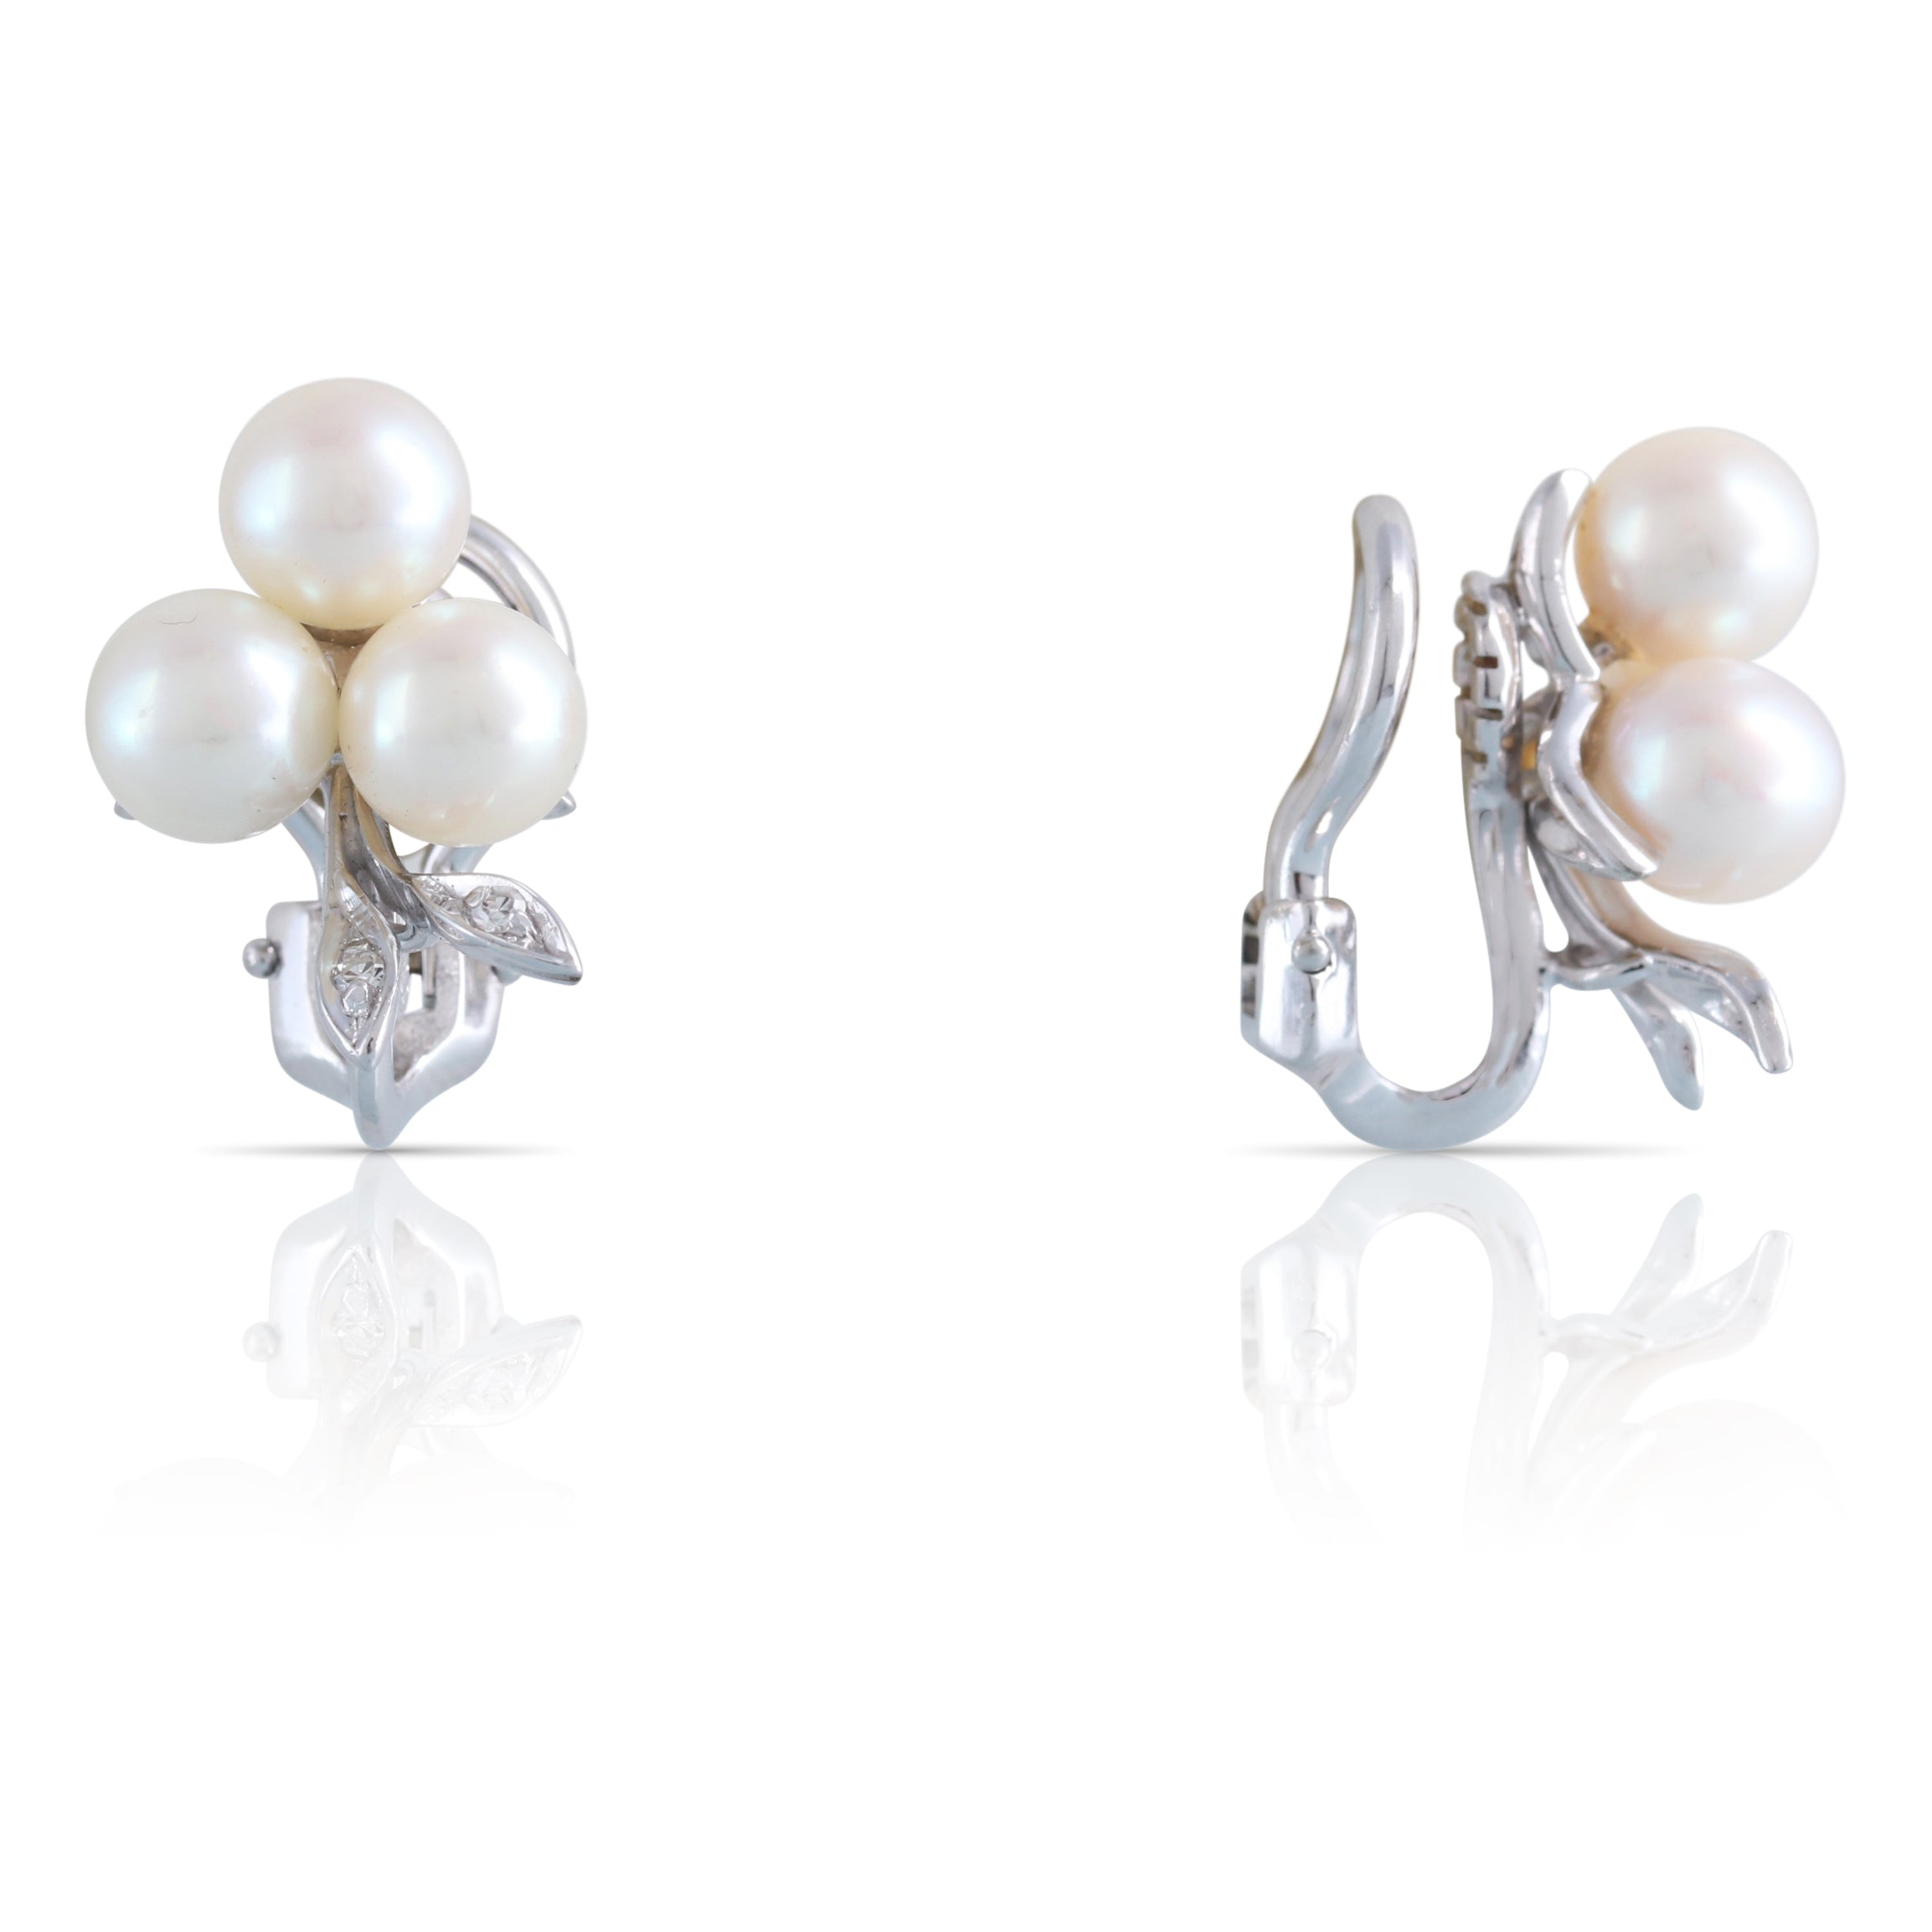 Pearl and Diamond Earrings | The Leona